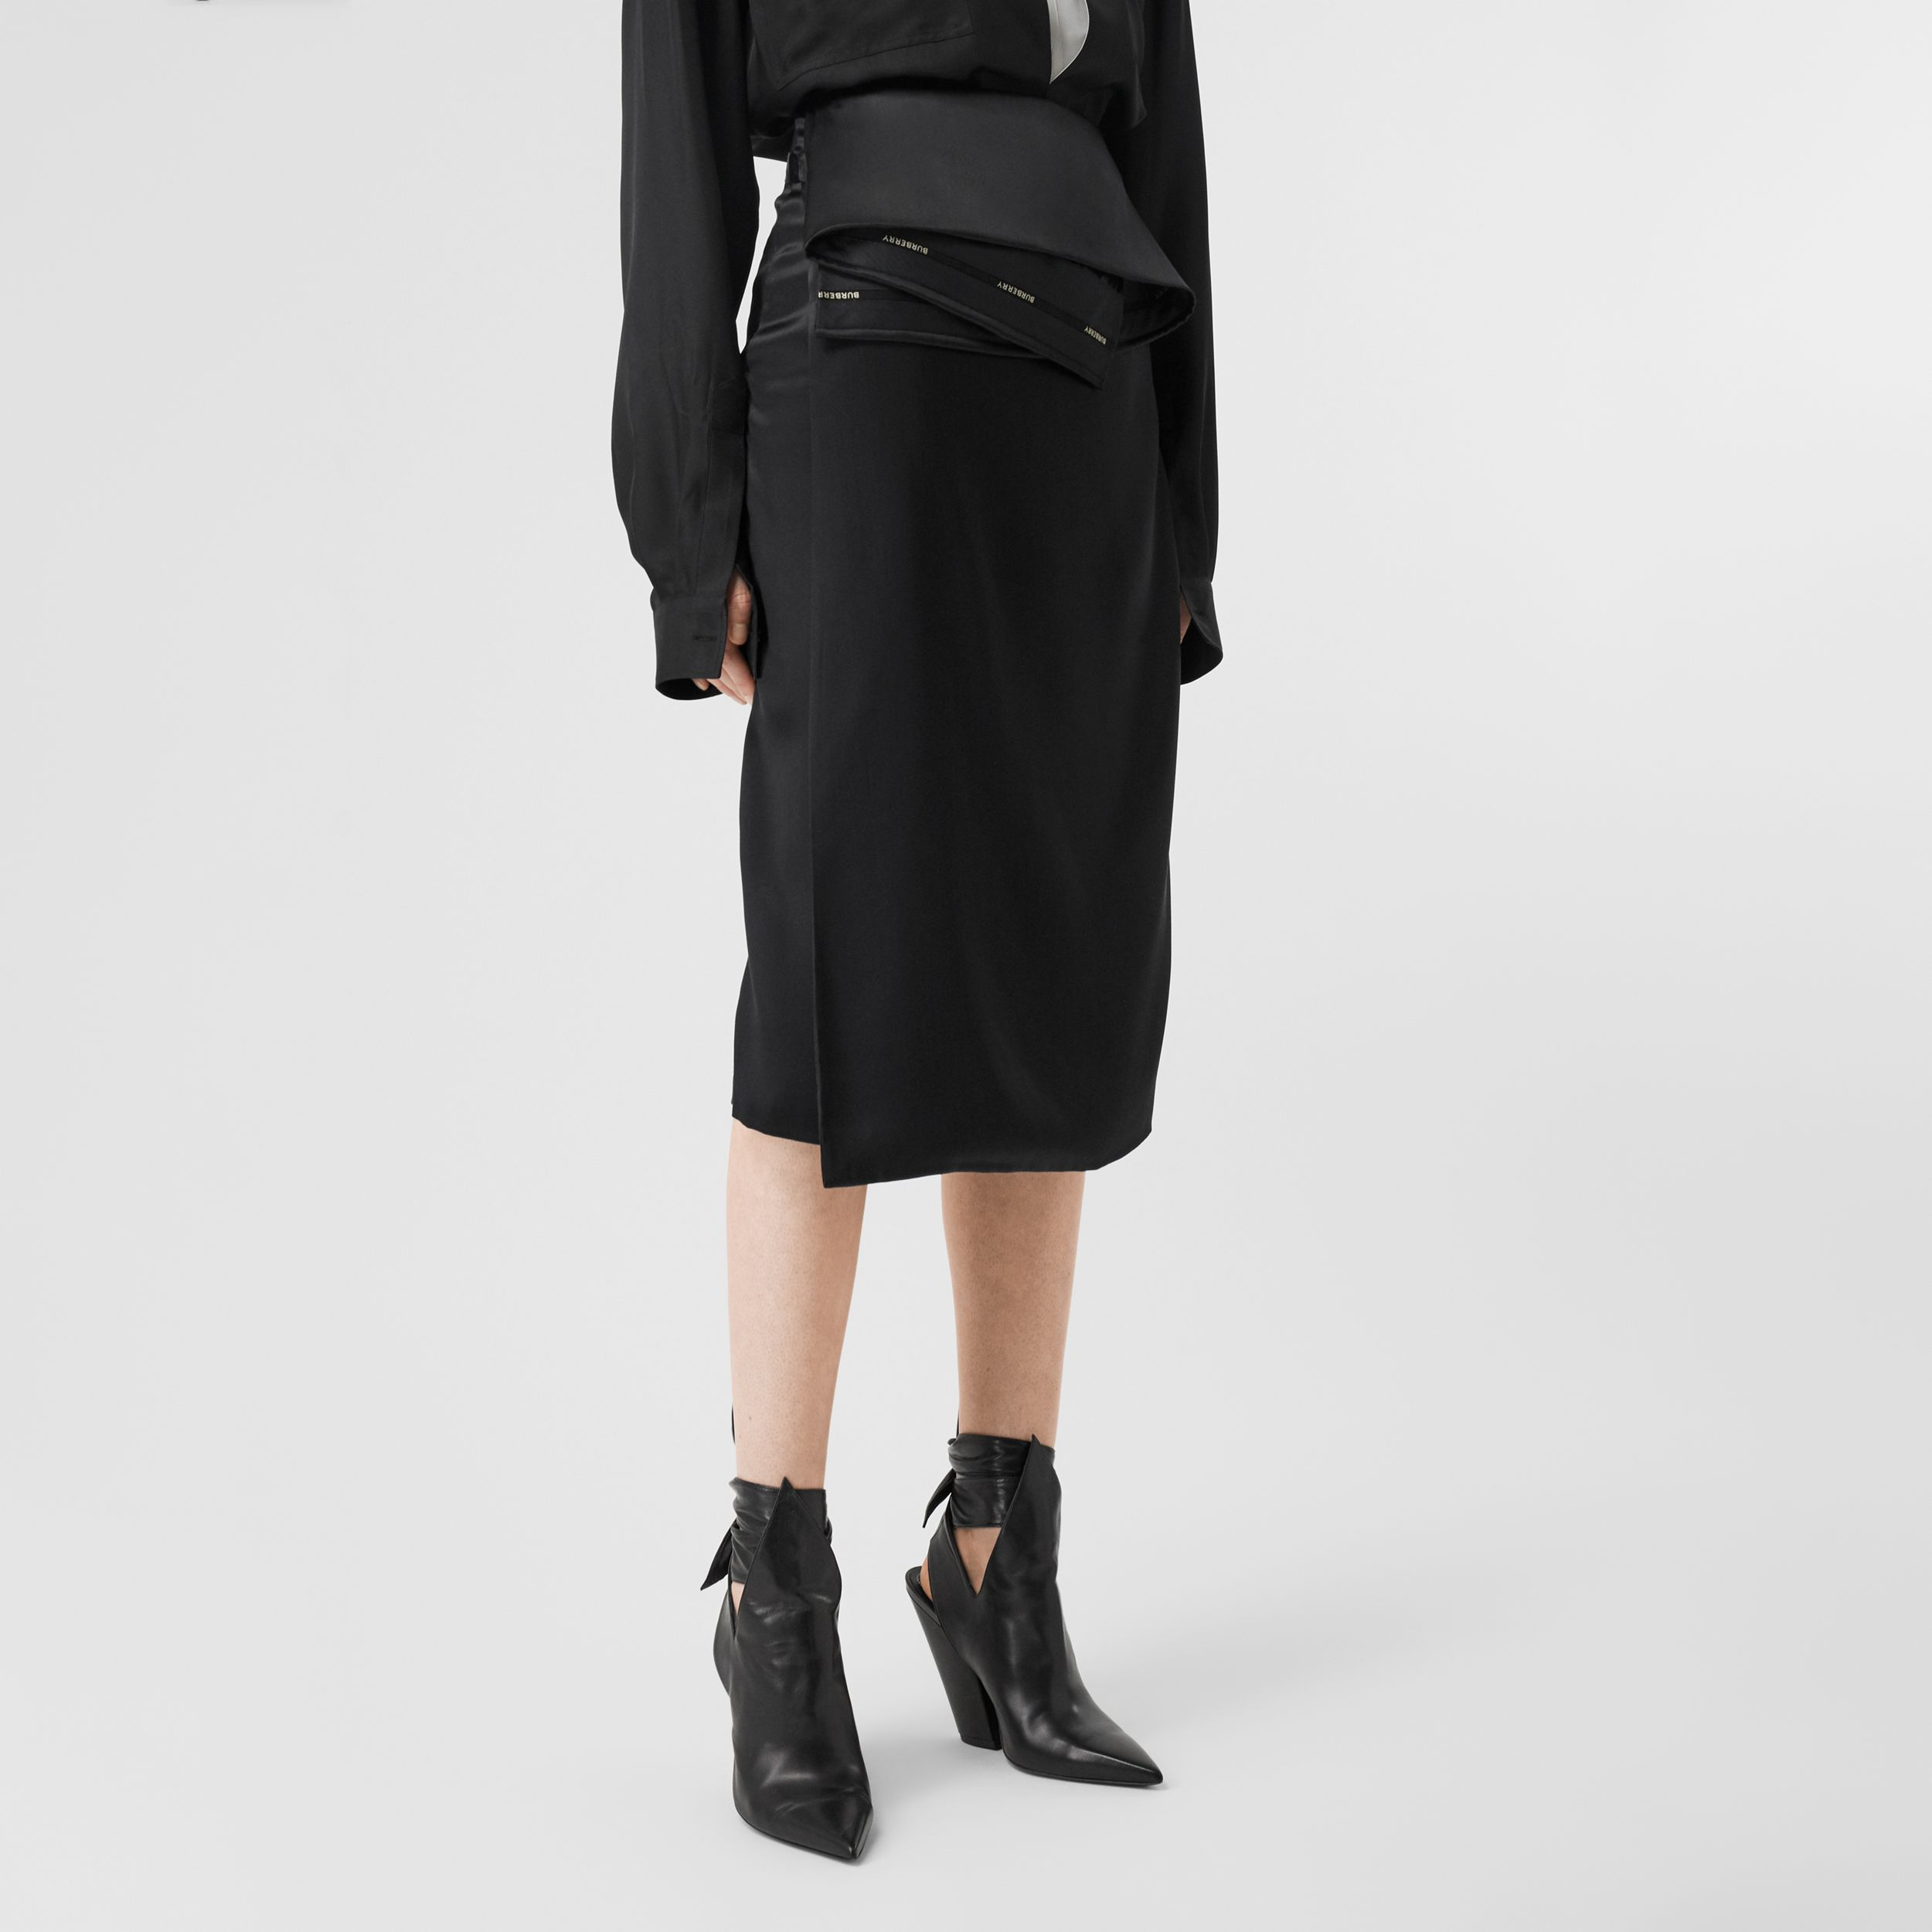 Silk Satin Foldover Skirt in Black - Women | Burberry Hong Kong S.A.R. - 3